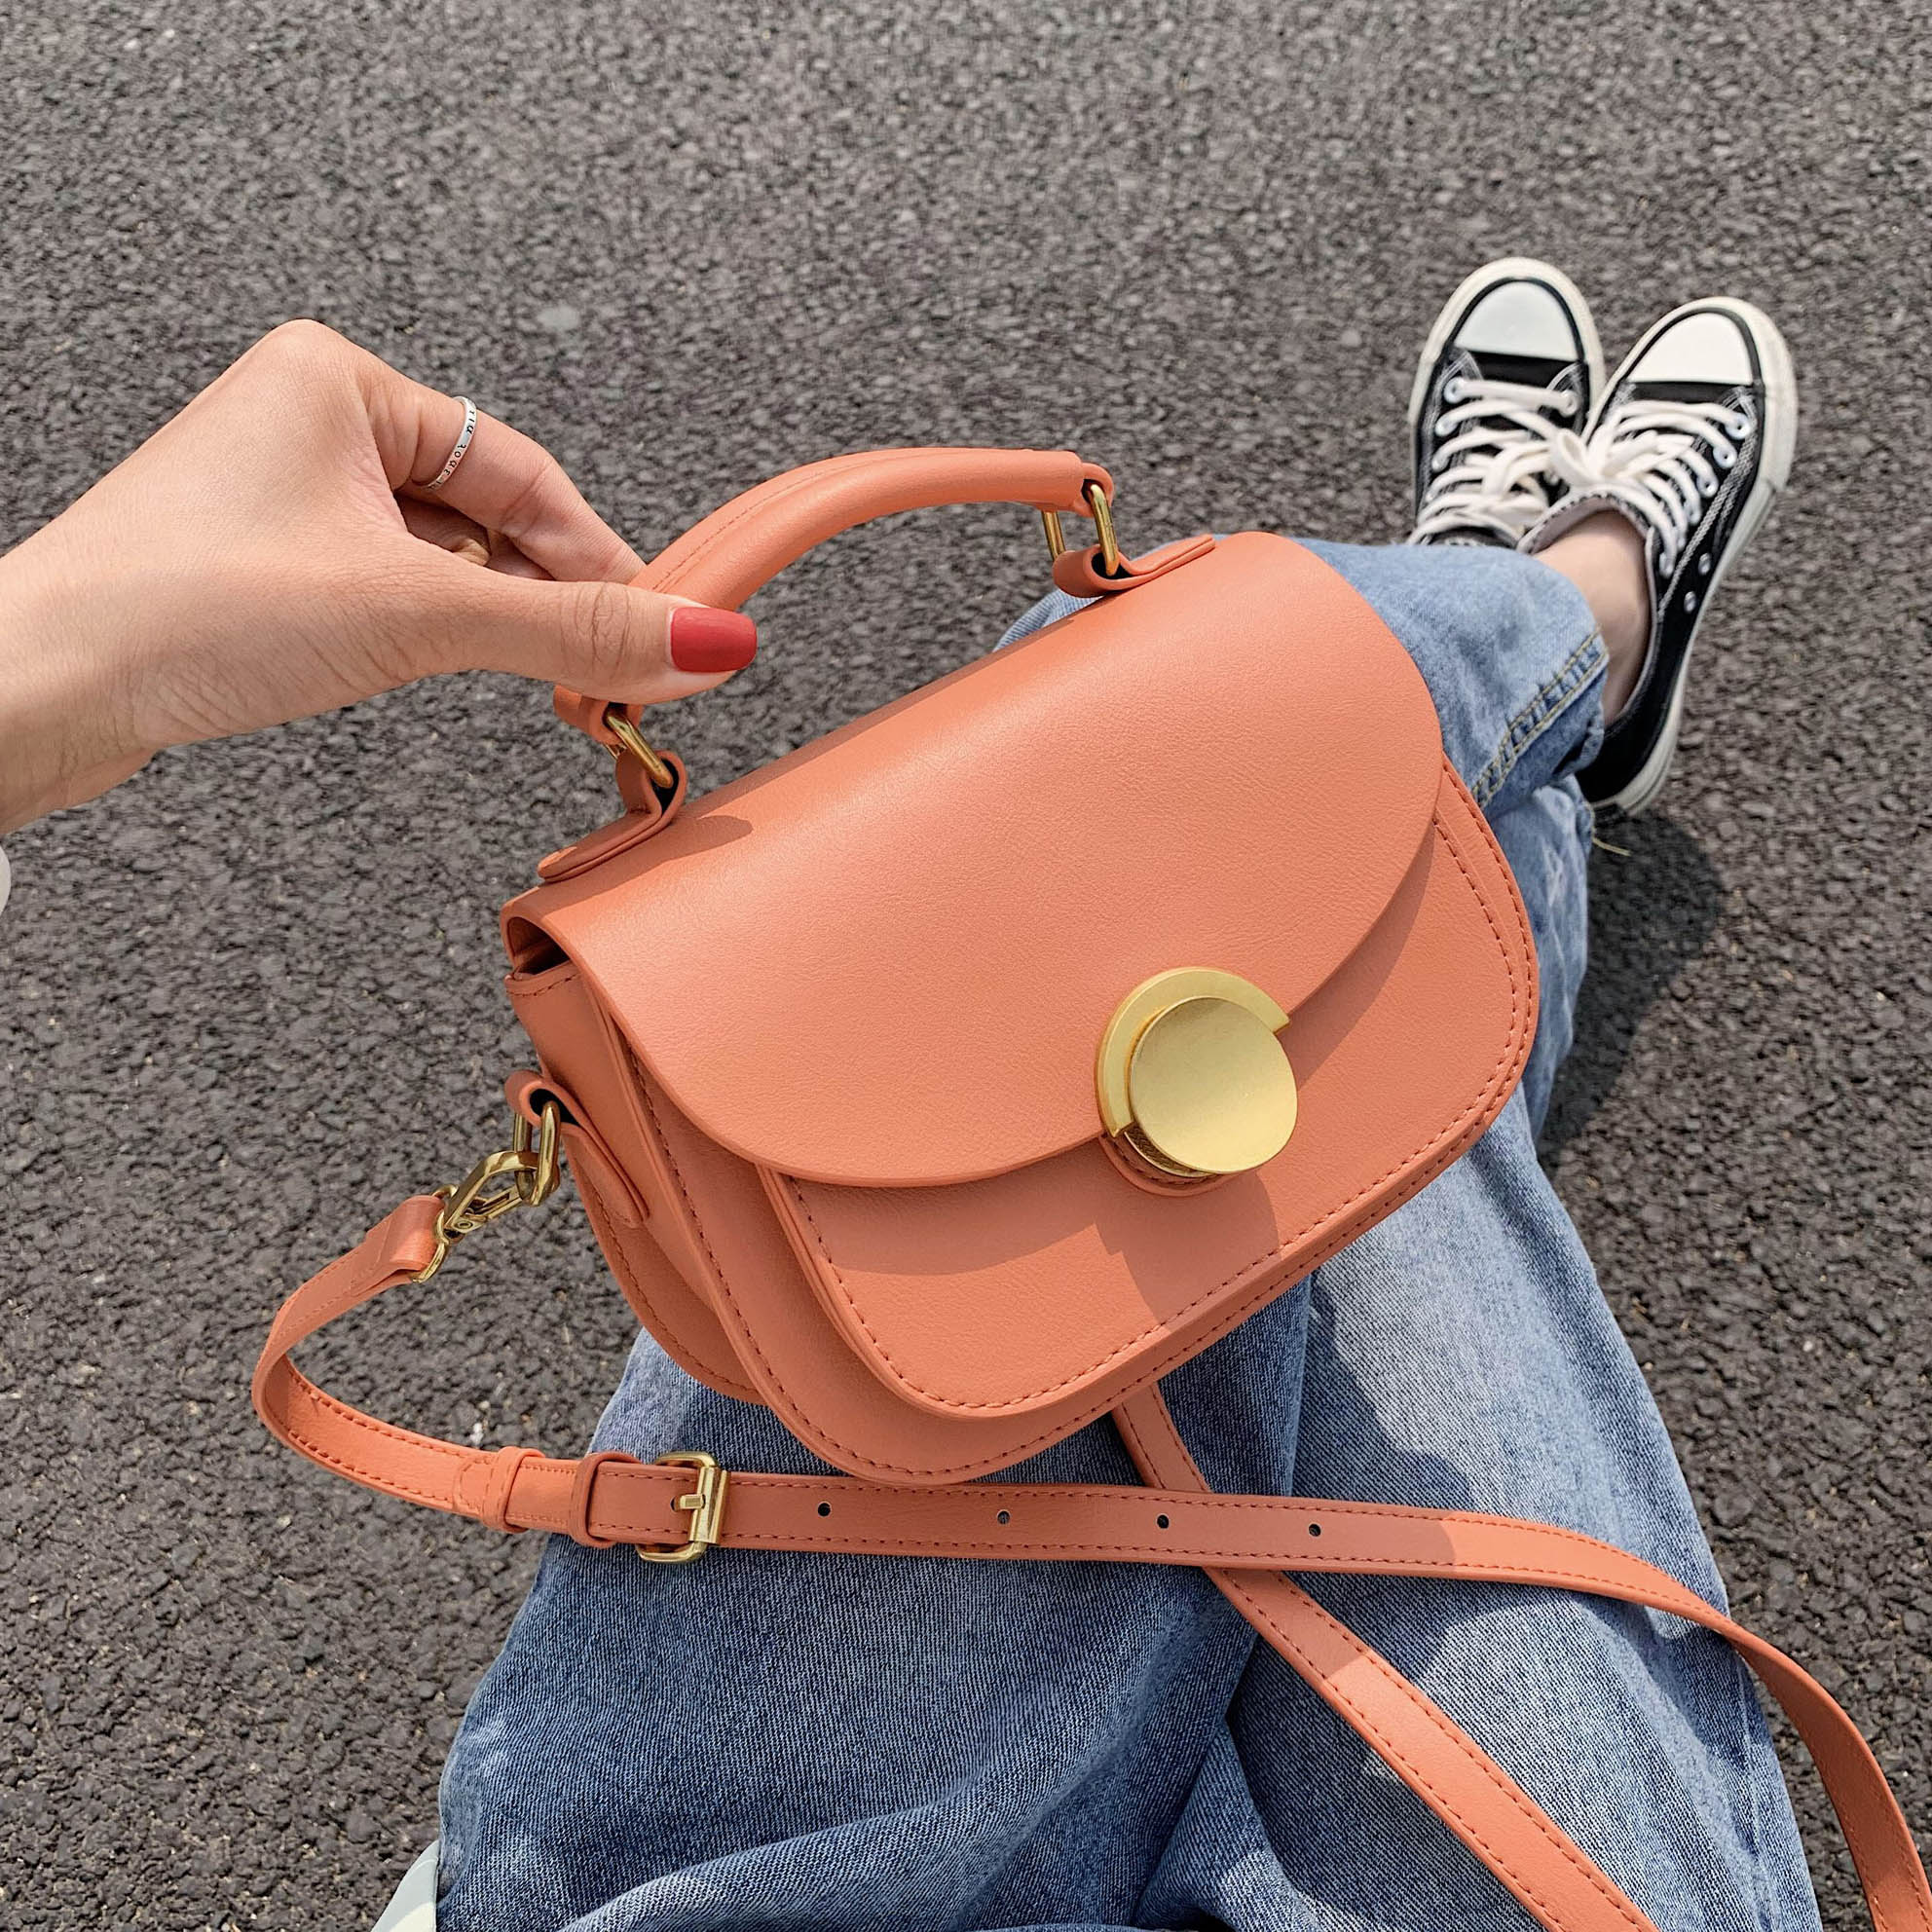 MINI Solid Color PU Leather Crossbody Bags For Women Luxury 2020 Fashion Shoulder Handbags Lady Summer Totes And Purses